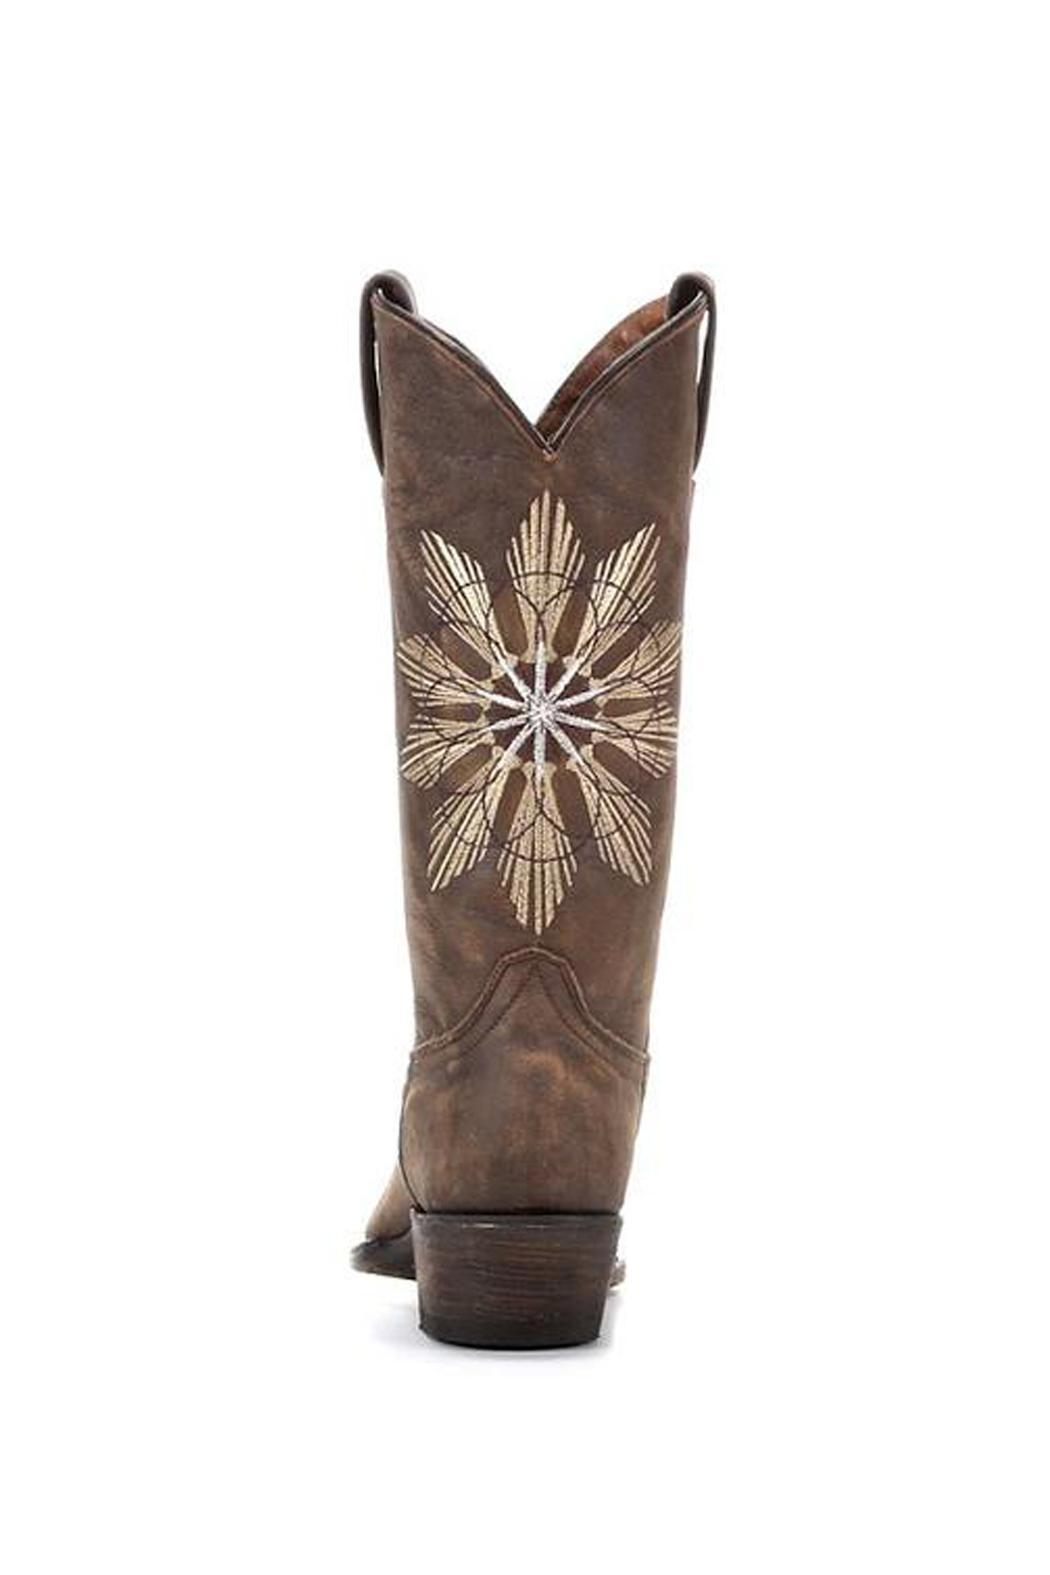 American Rebel Boot Company Cheyenne Saddle Boot From